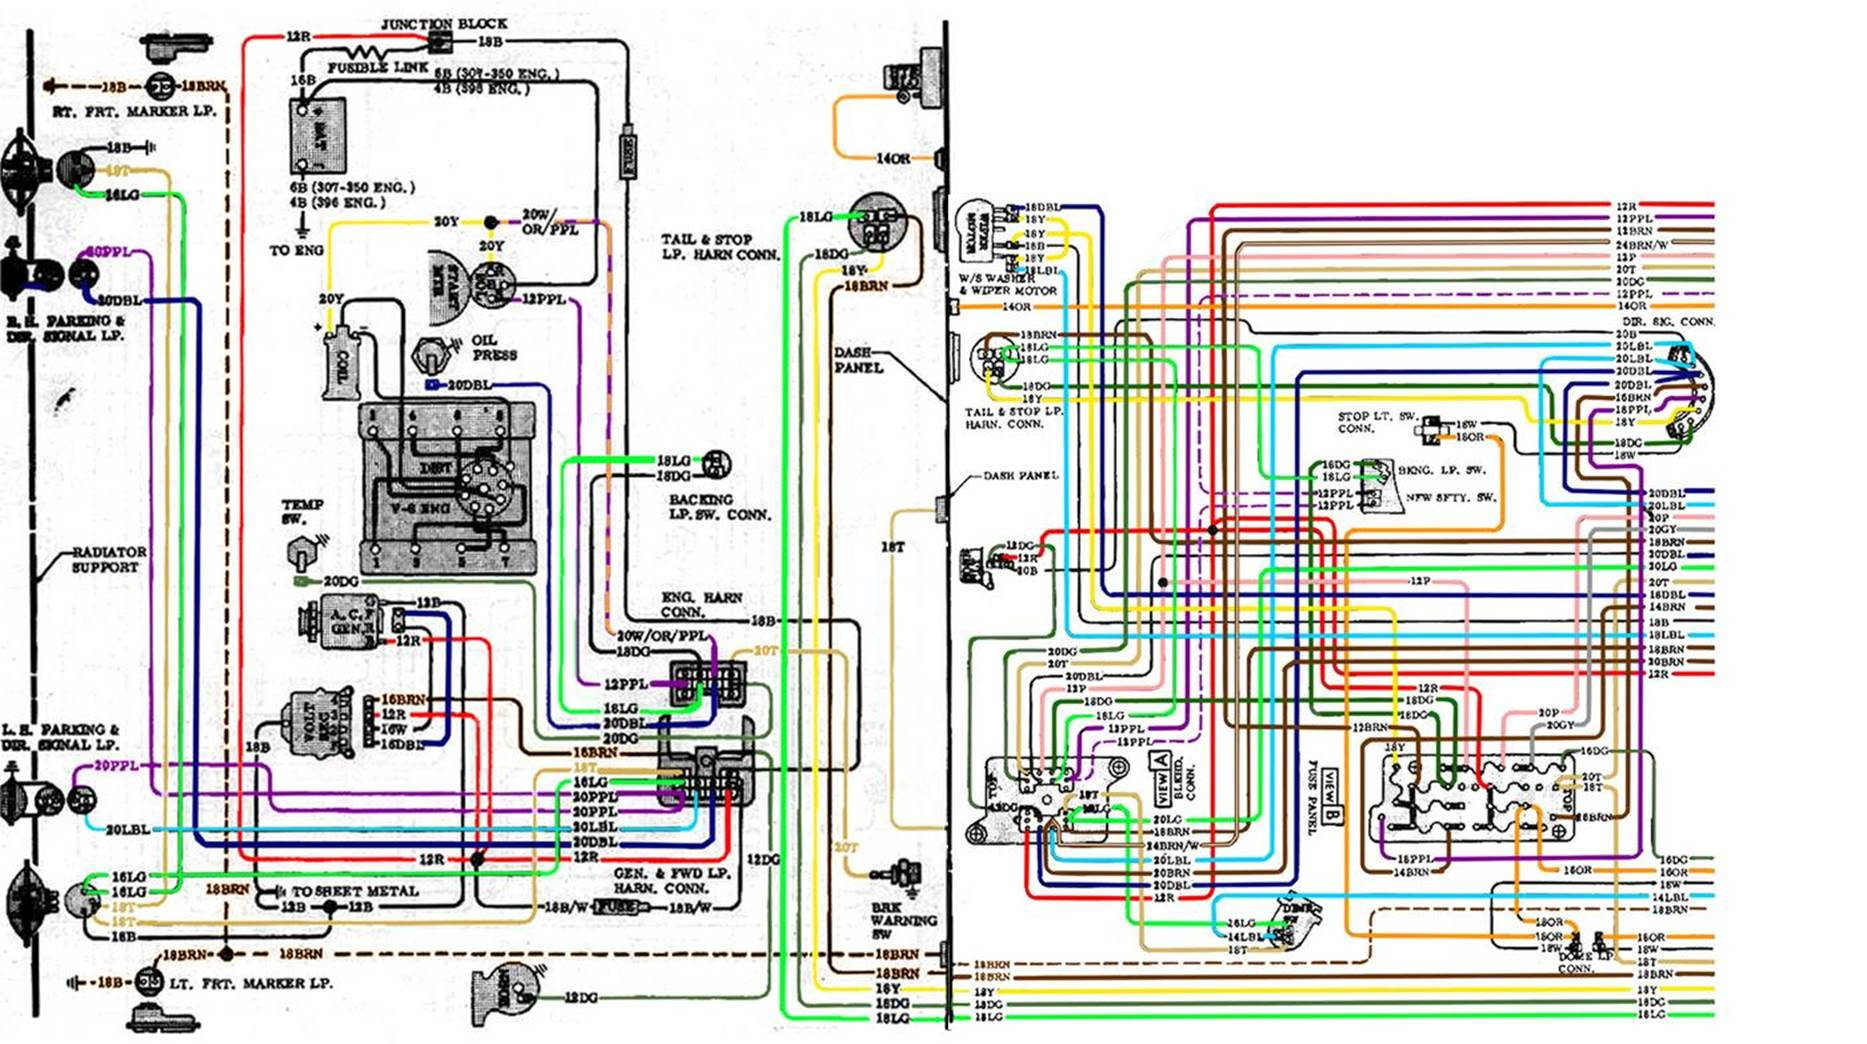 image002 67 72 chevy wiring diagram c10 wiring diagram at edmiracle.co